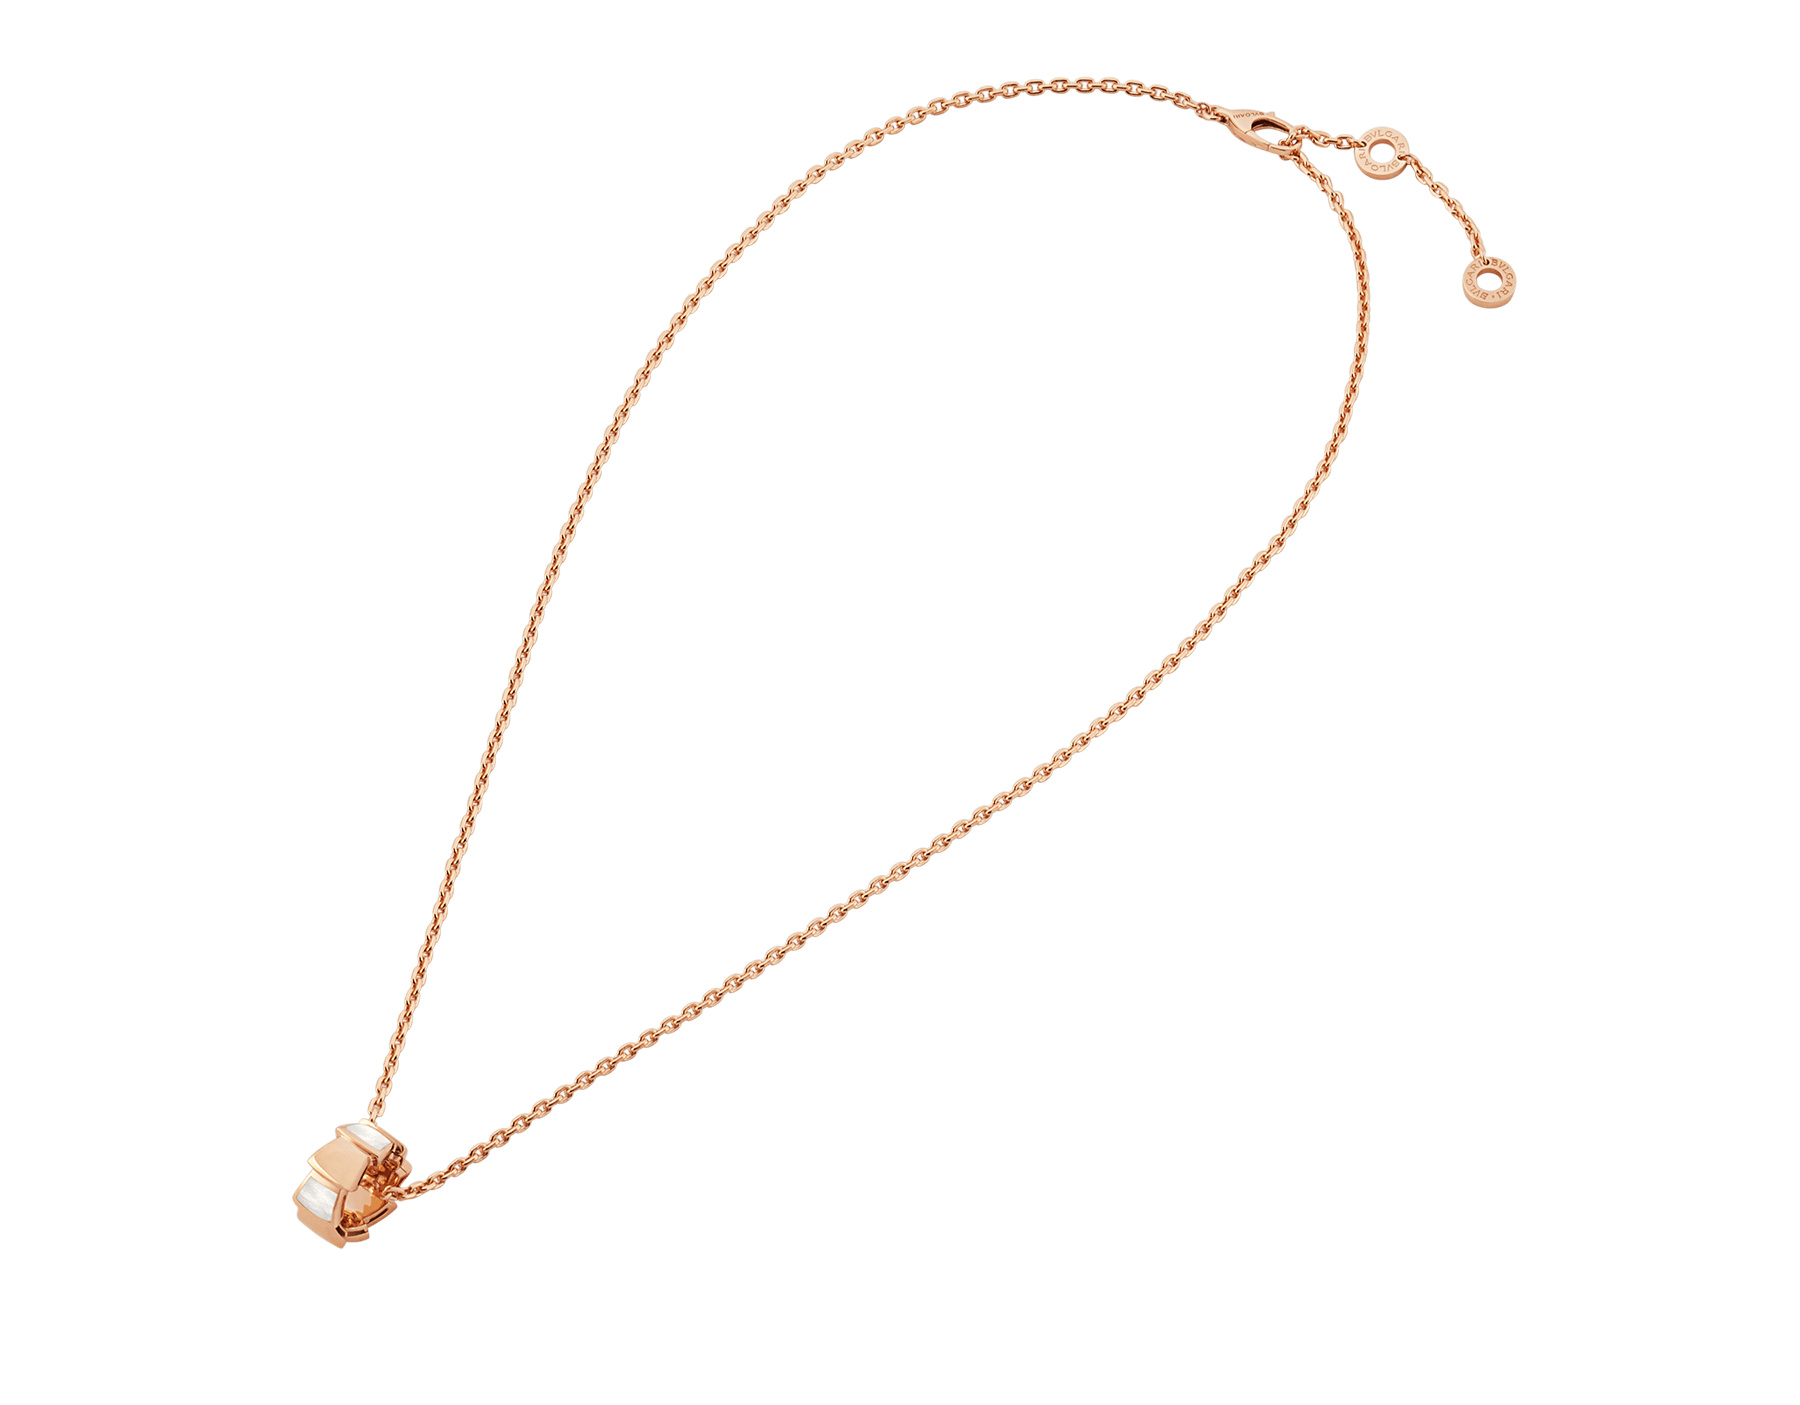 Serpenti Viper 18 kt rose gold necklace with pendant set with mother-of-pearl elements 355795 image 2